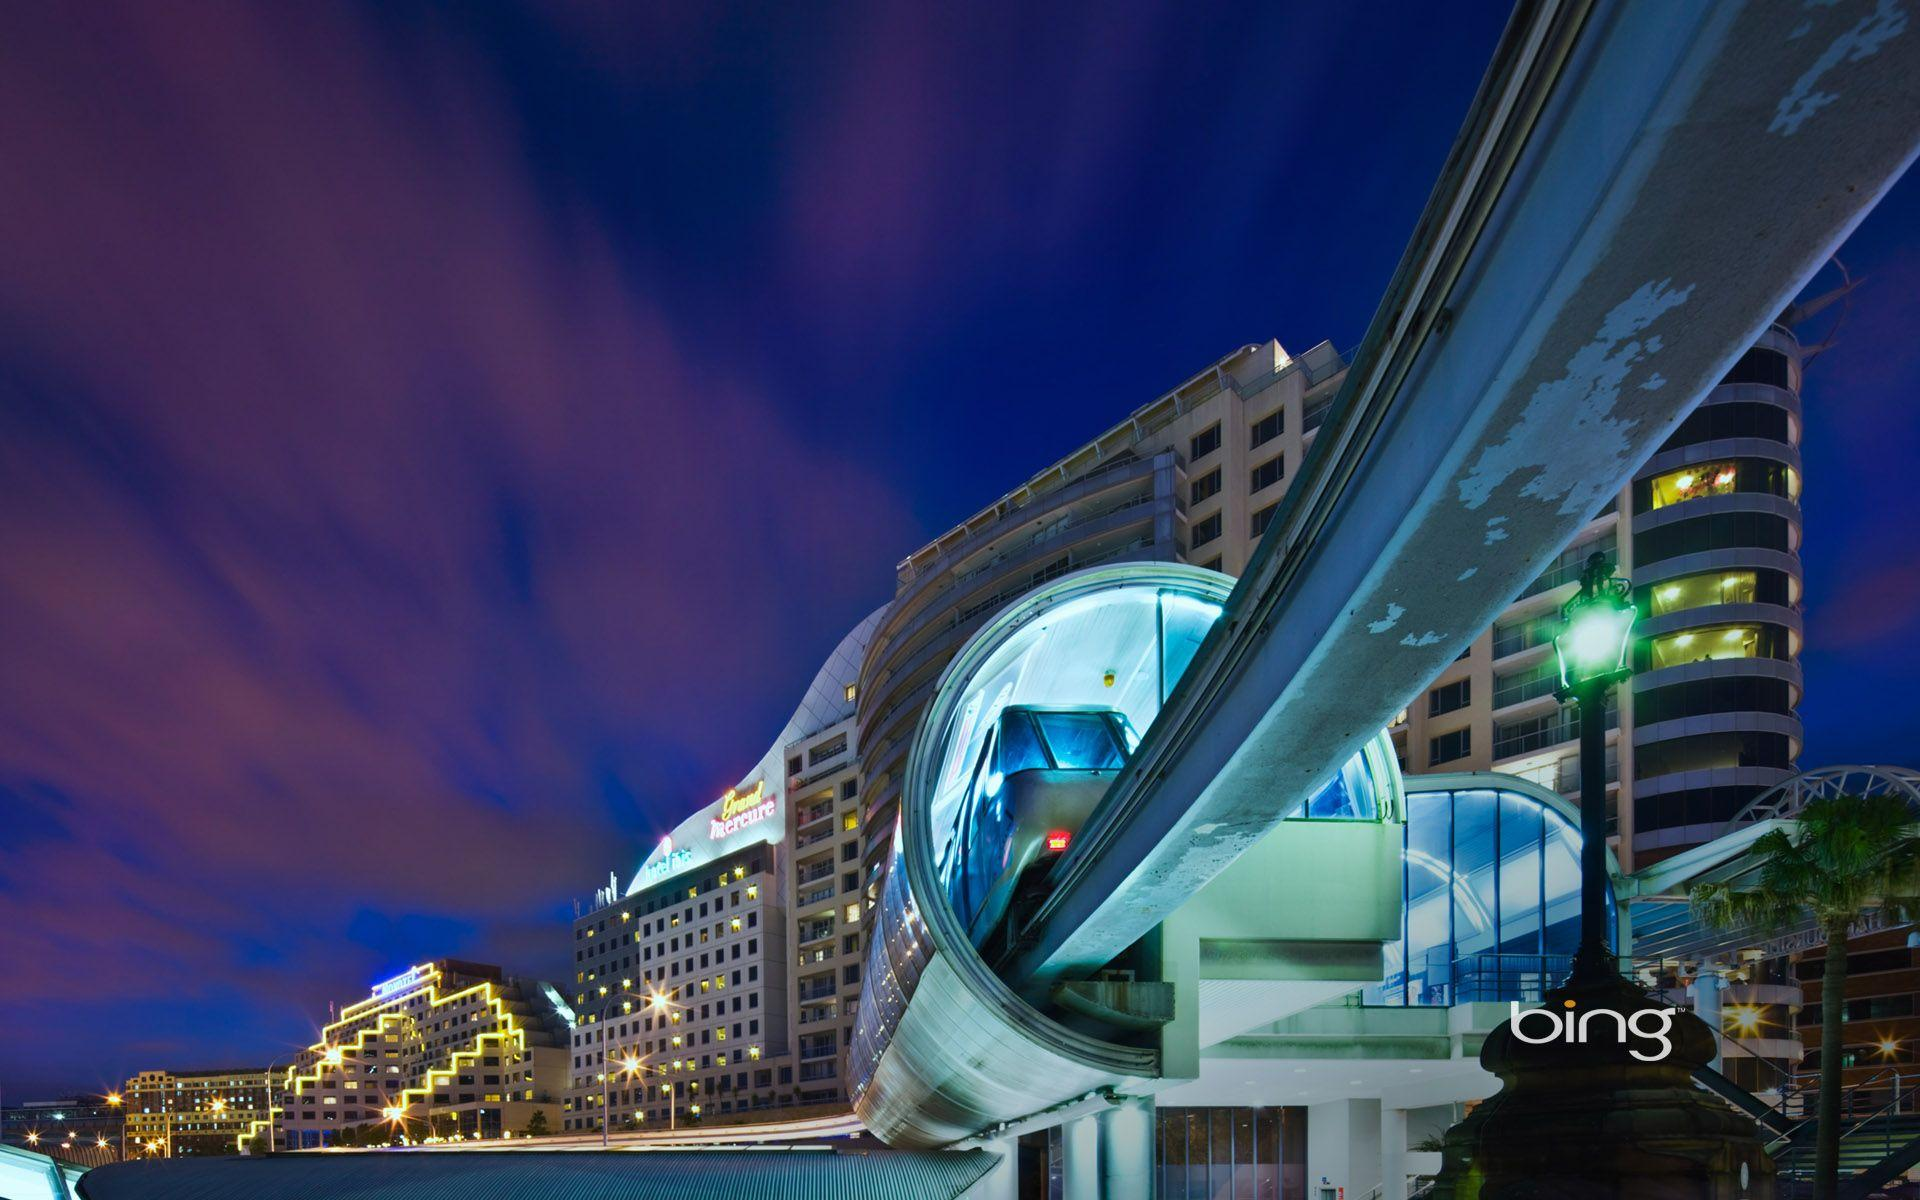 Monorail Darling Harbour Sydney Wallpapers